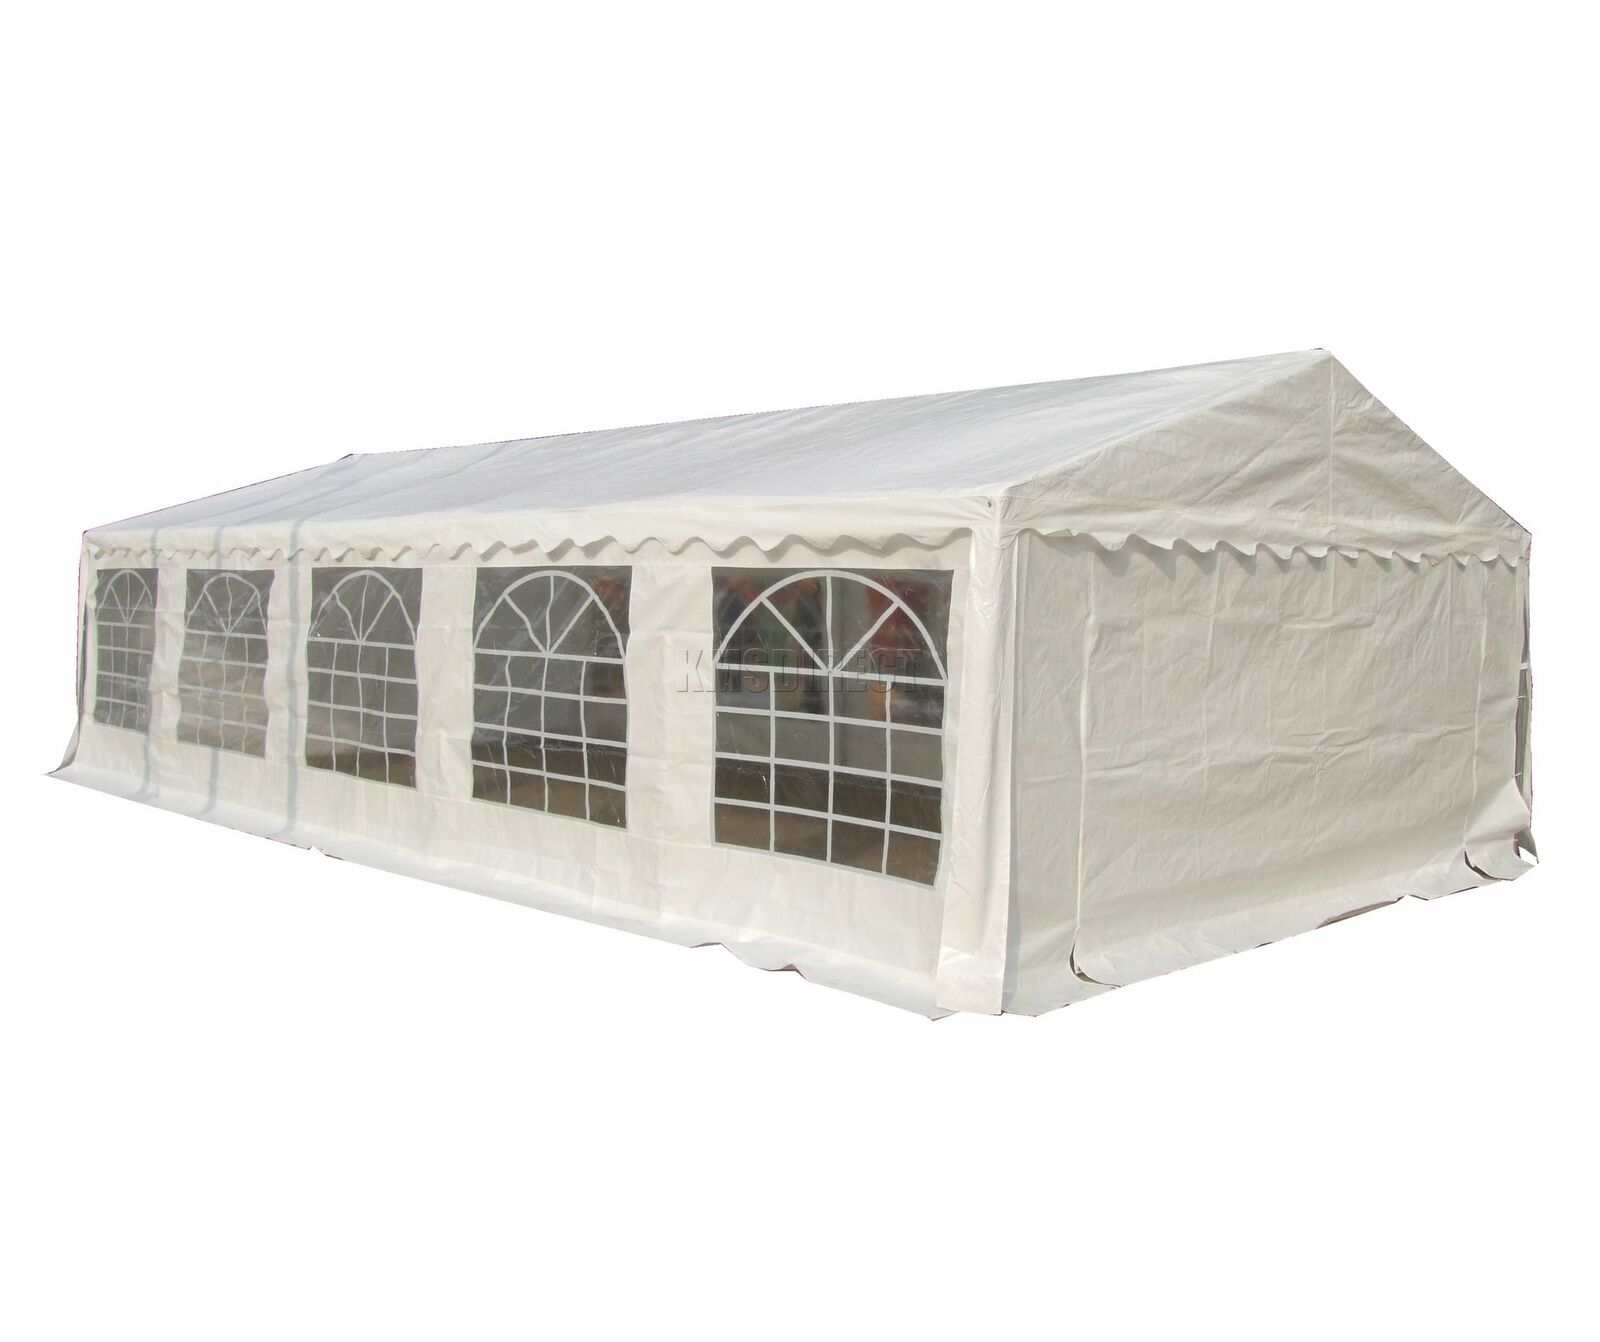 FoxHunter Outdoor 5m X 10m Heavy Duty Wedding Party Tenda Marquee SCORREVOLI BIANCO